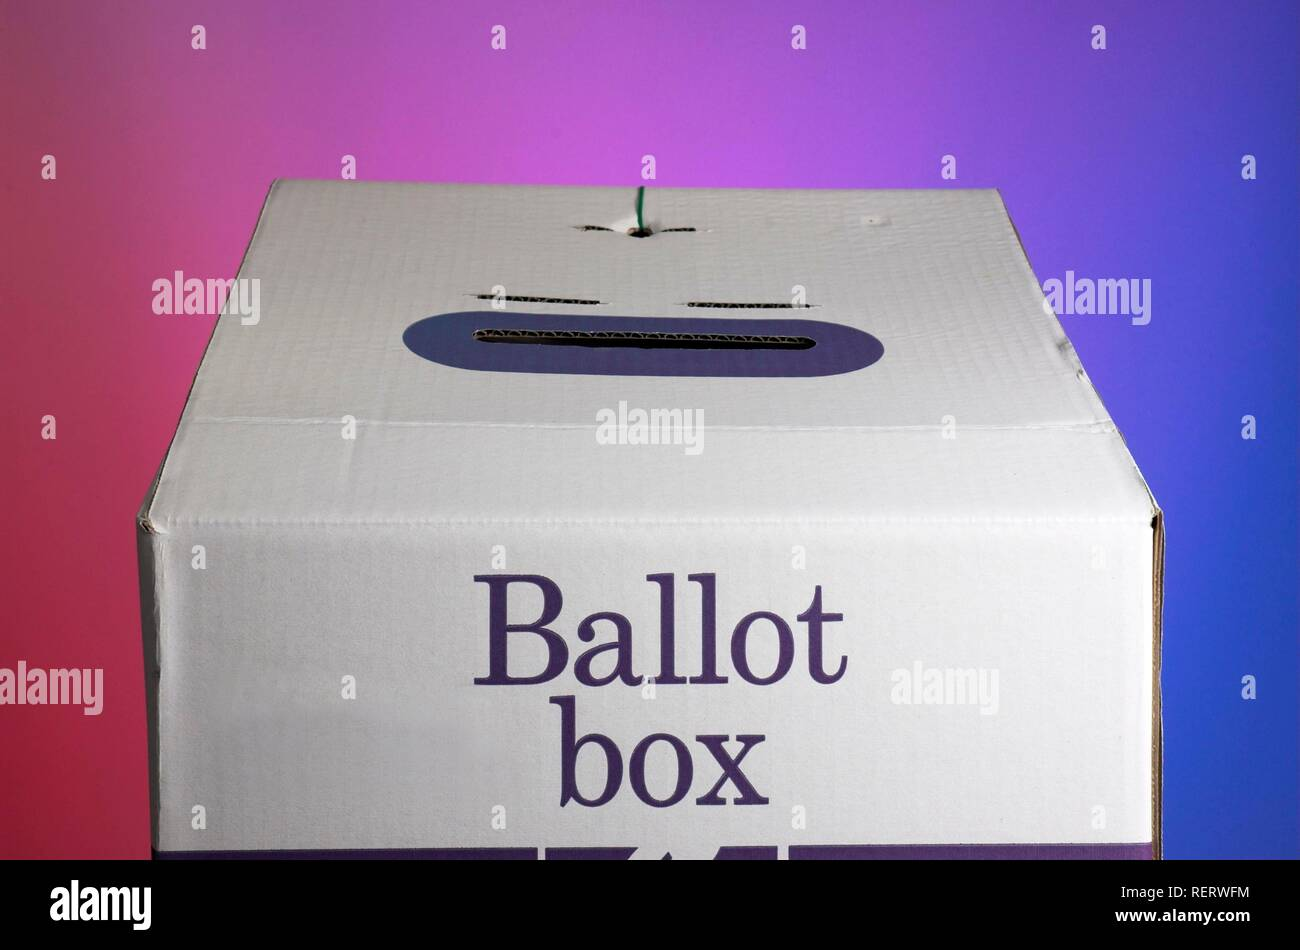 Ballot box against backdrop with opposing colours of the political spectrum - Stock Image